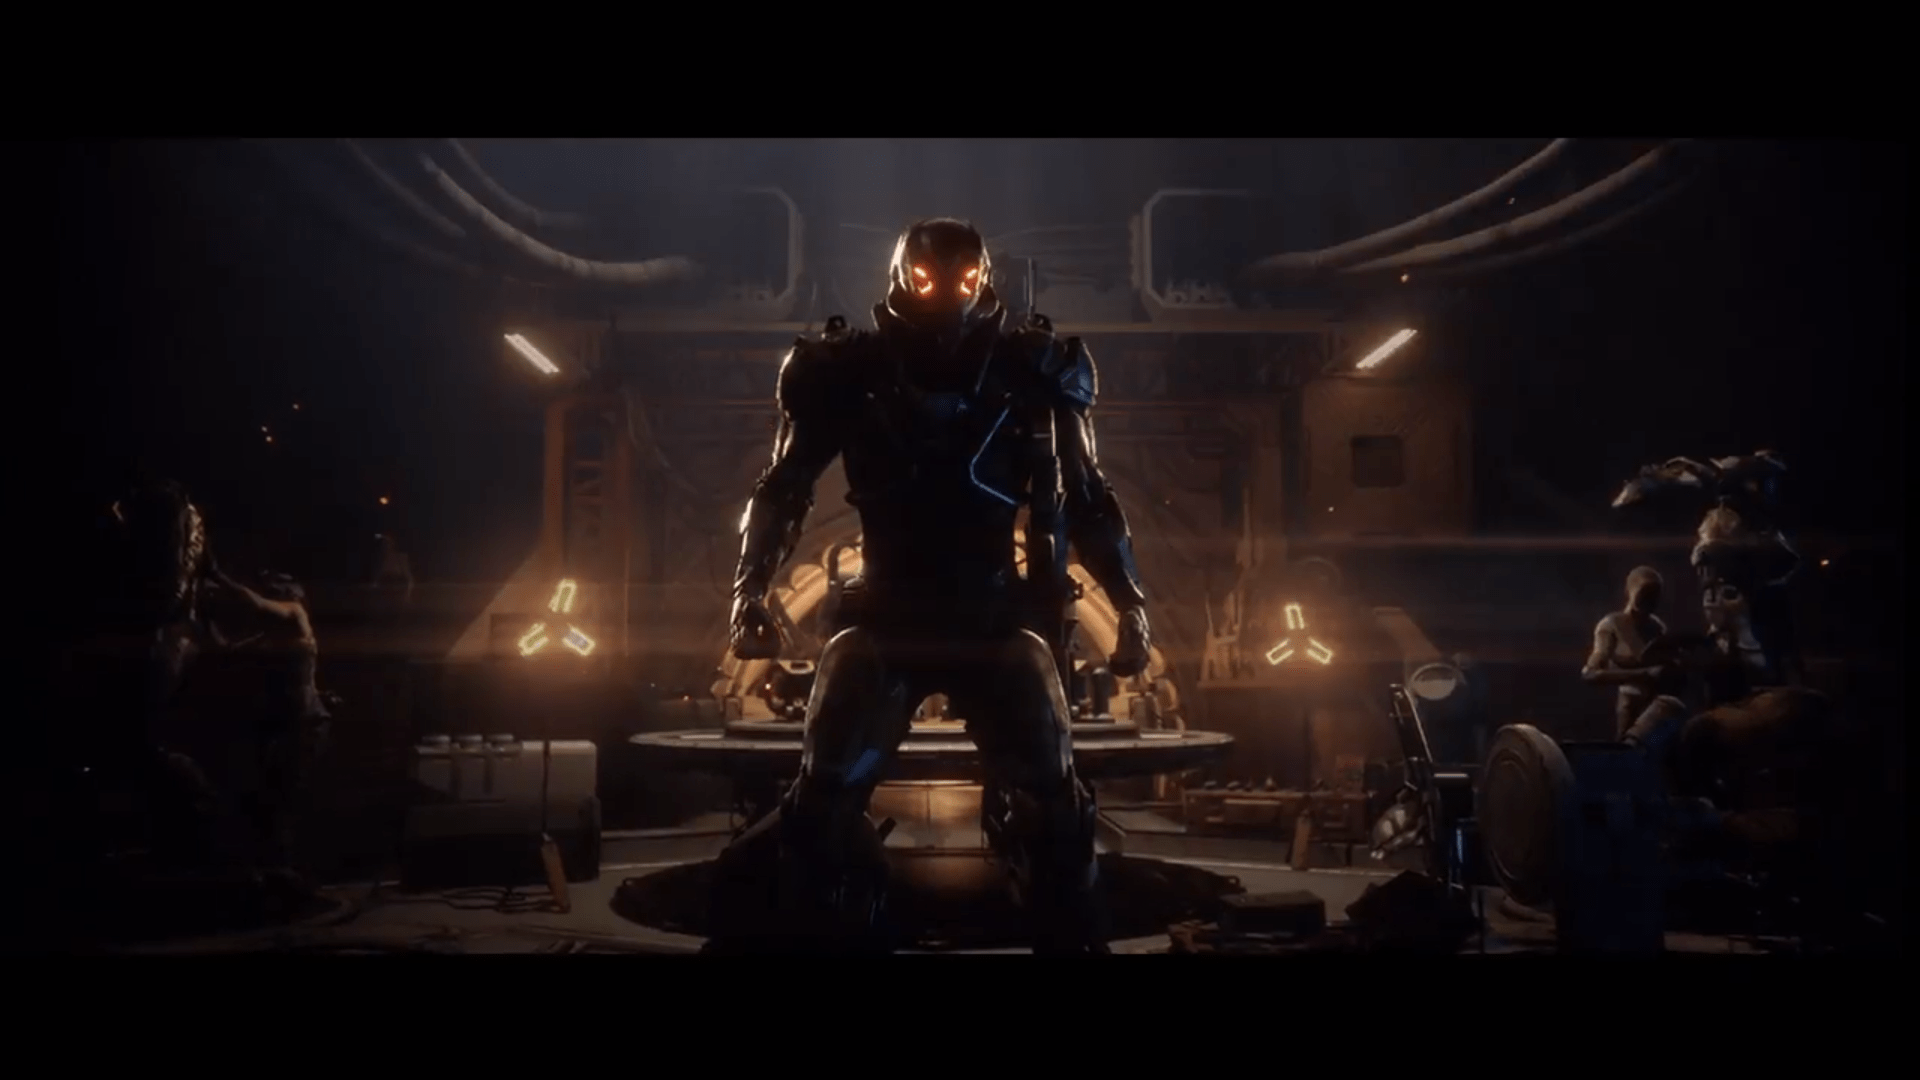 E3 2017: Anthem is Bioware's brand new IP